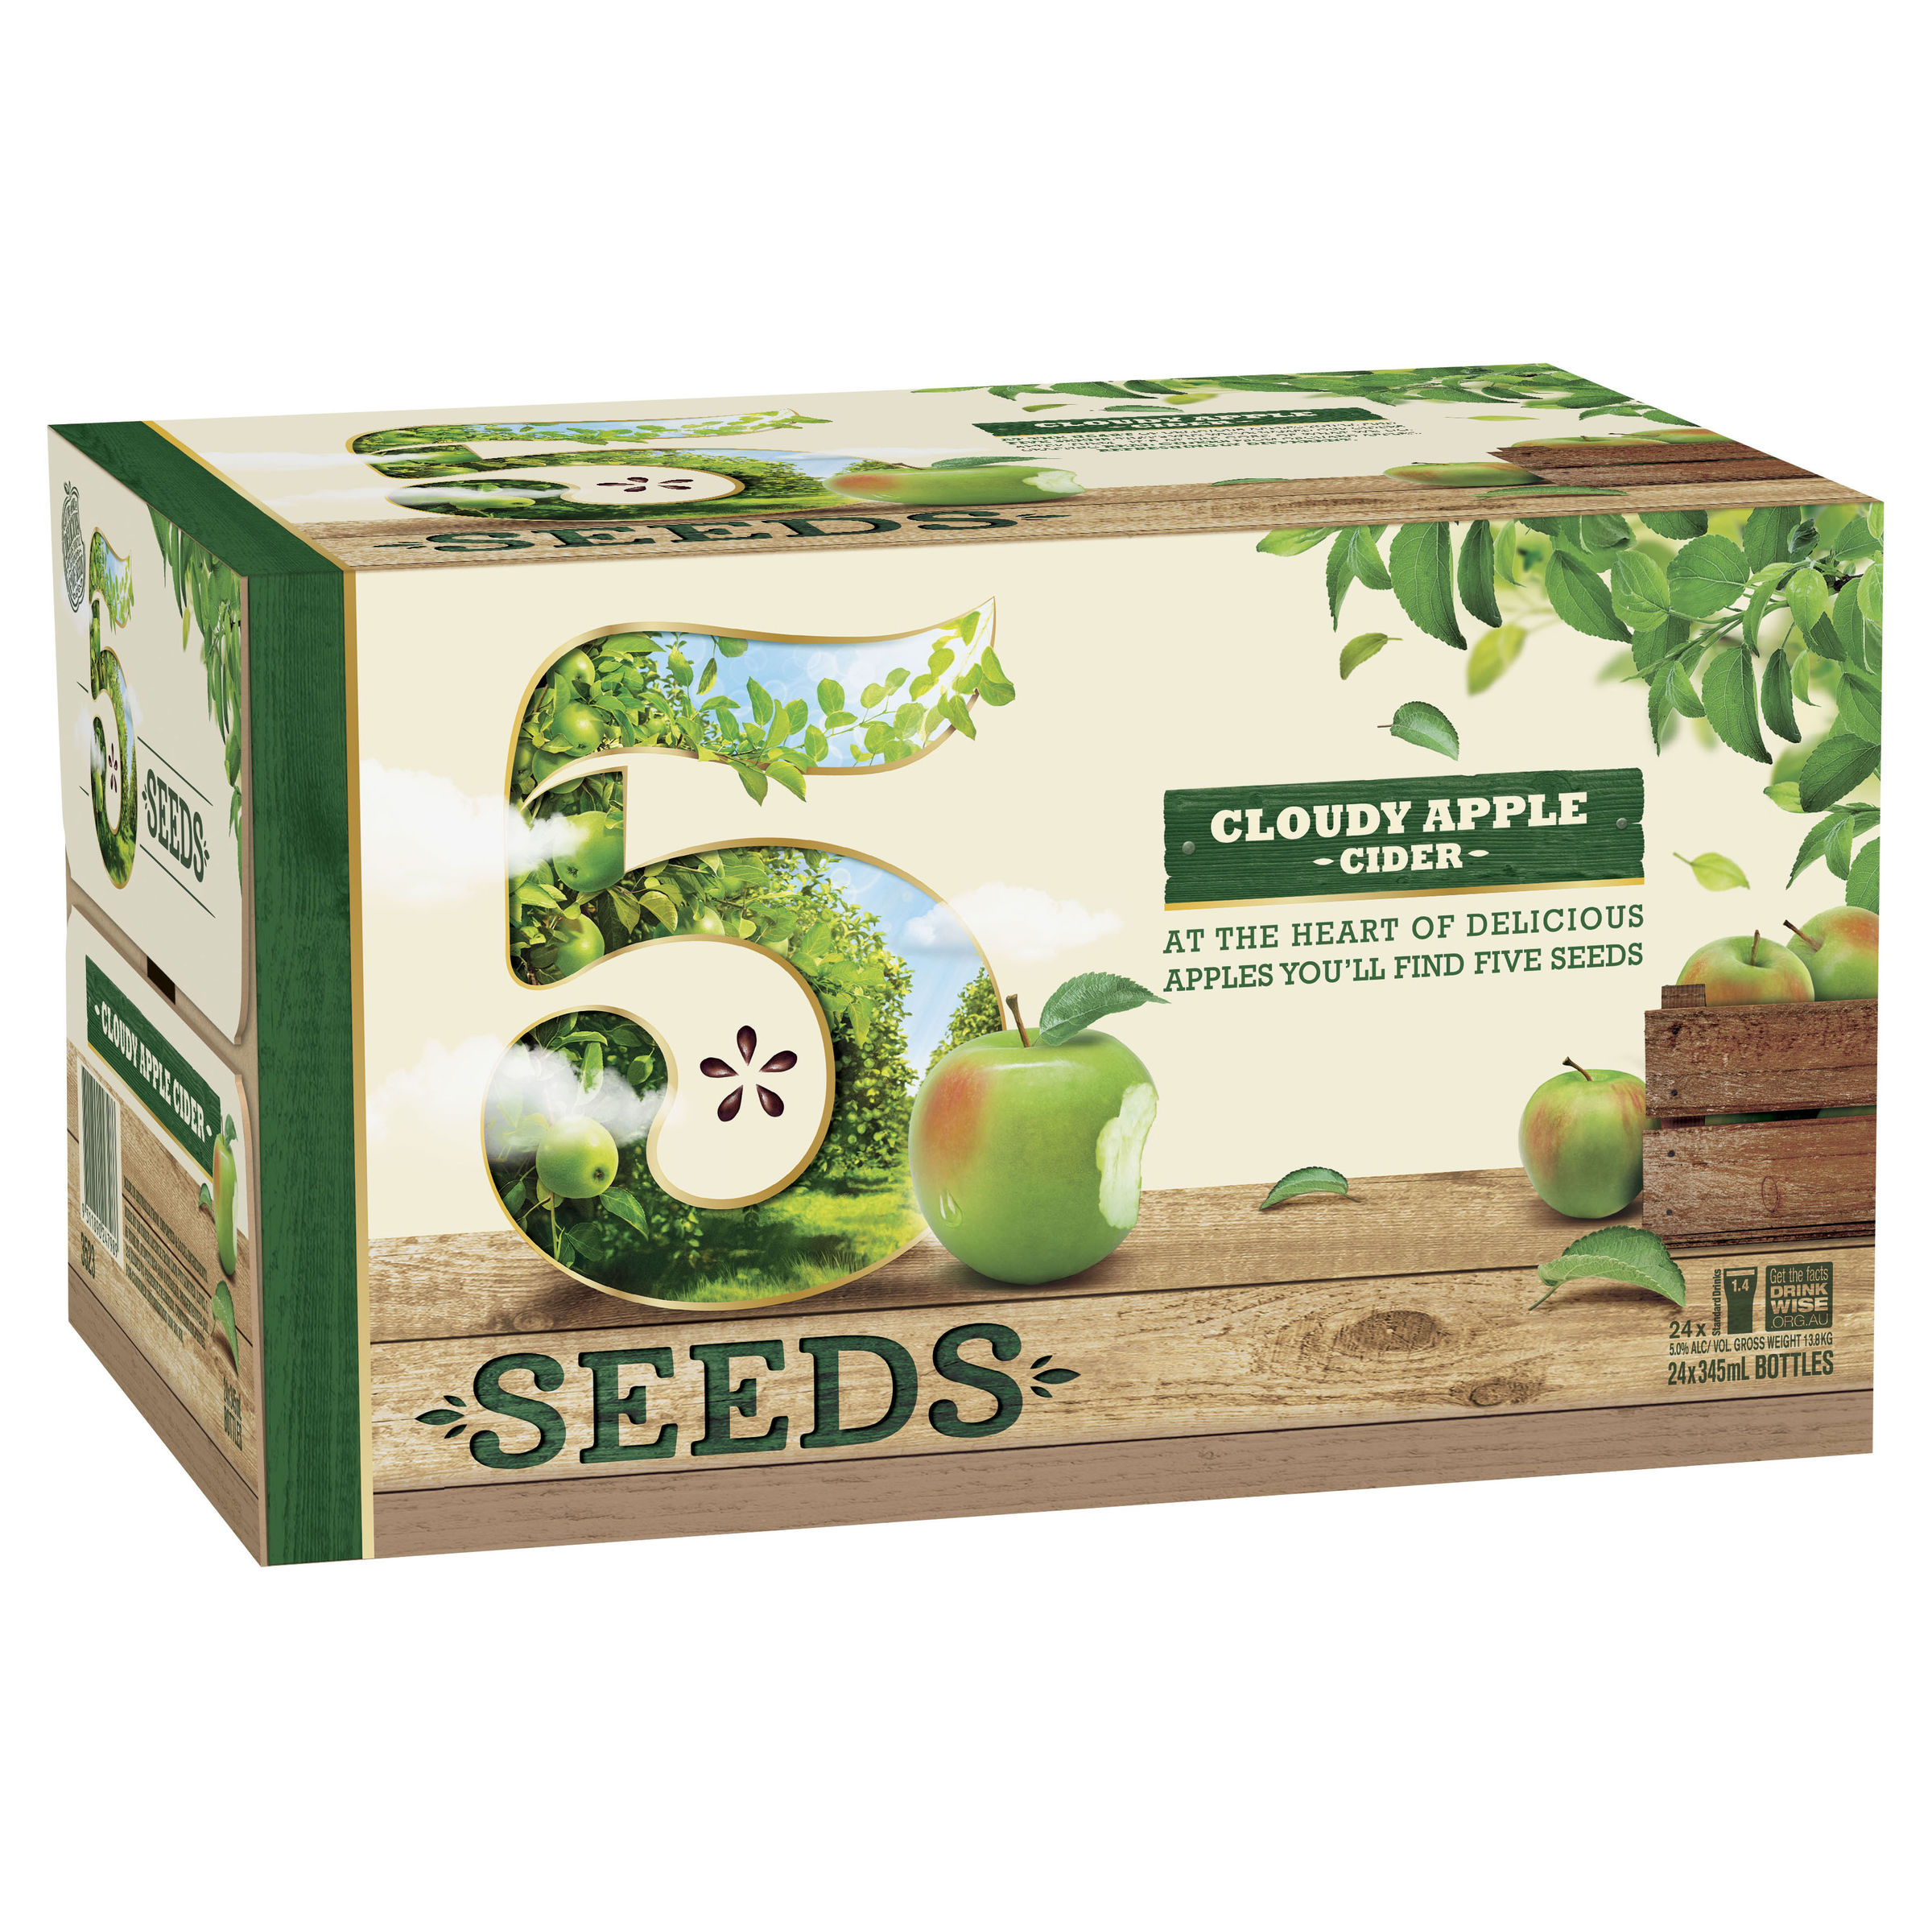 TED 5 SEEDS CLOUDY APPLE CIDER